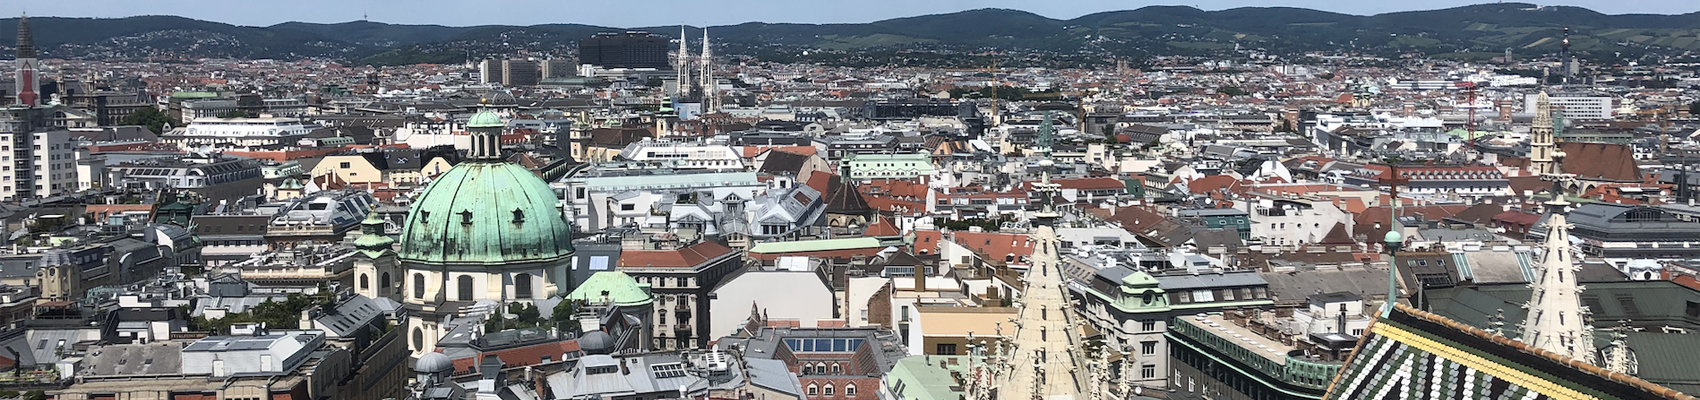 View of Vienna cityscape from above St. Stephens Cathedral